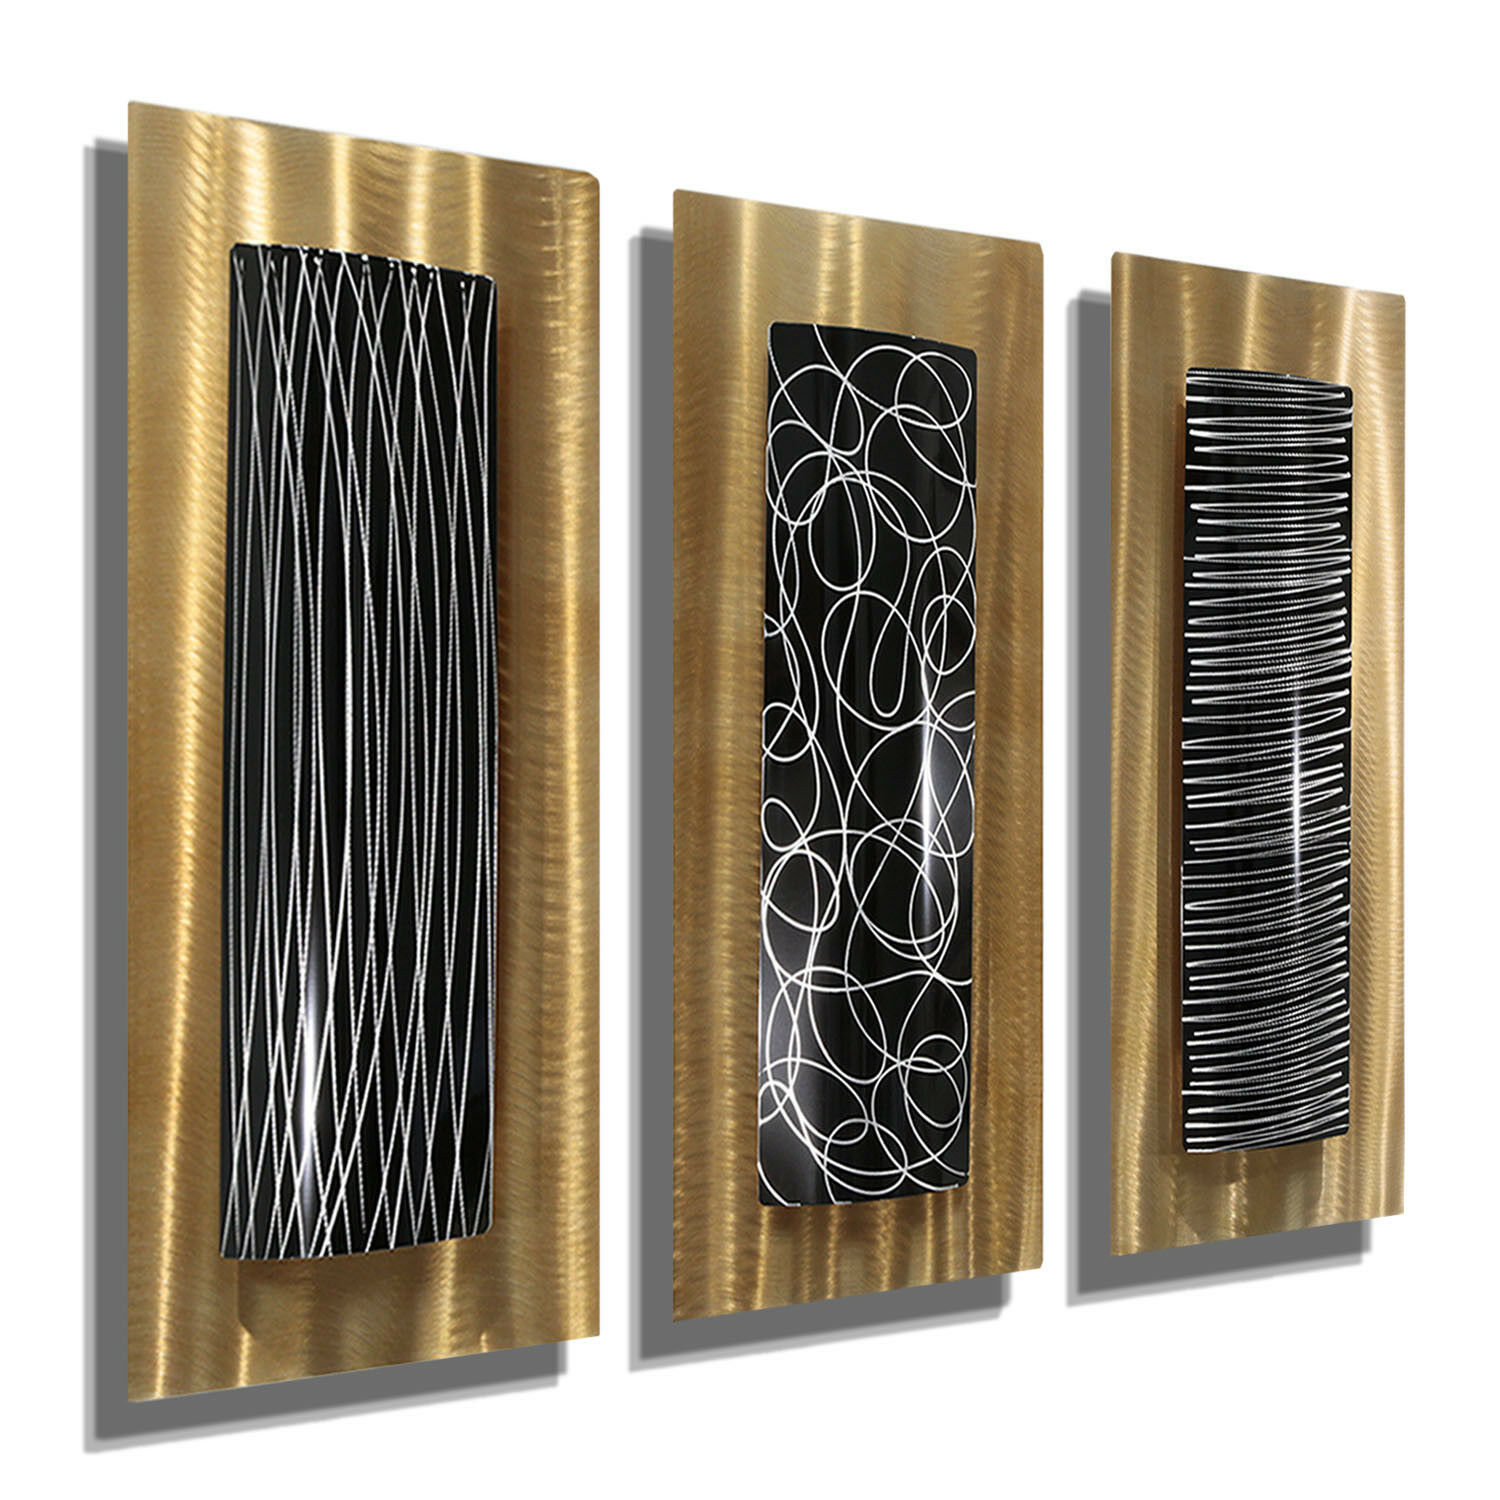 Set of three abstract gold black modern contemporary metal wall art accents